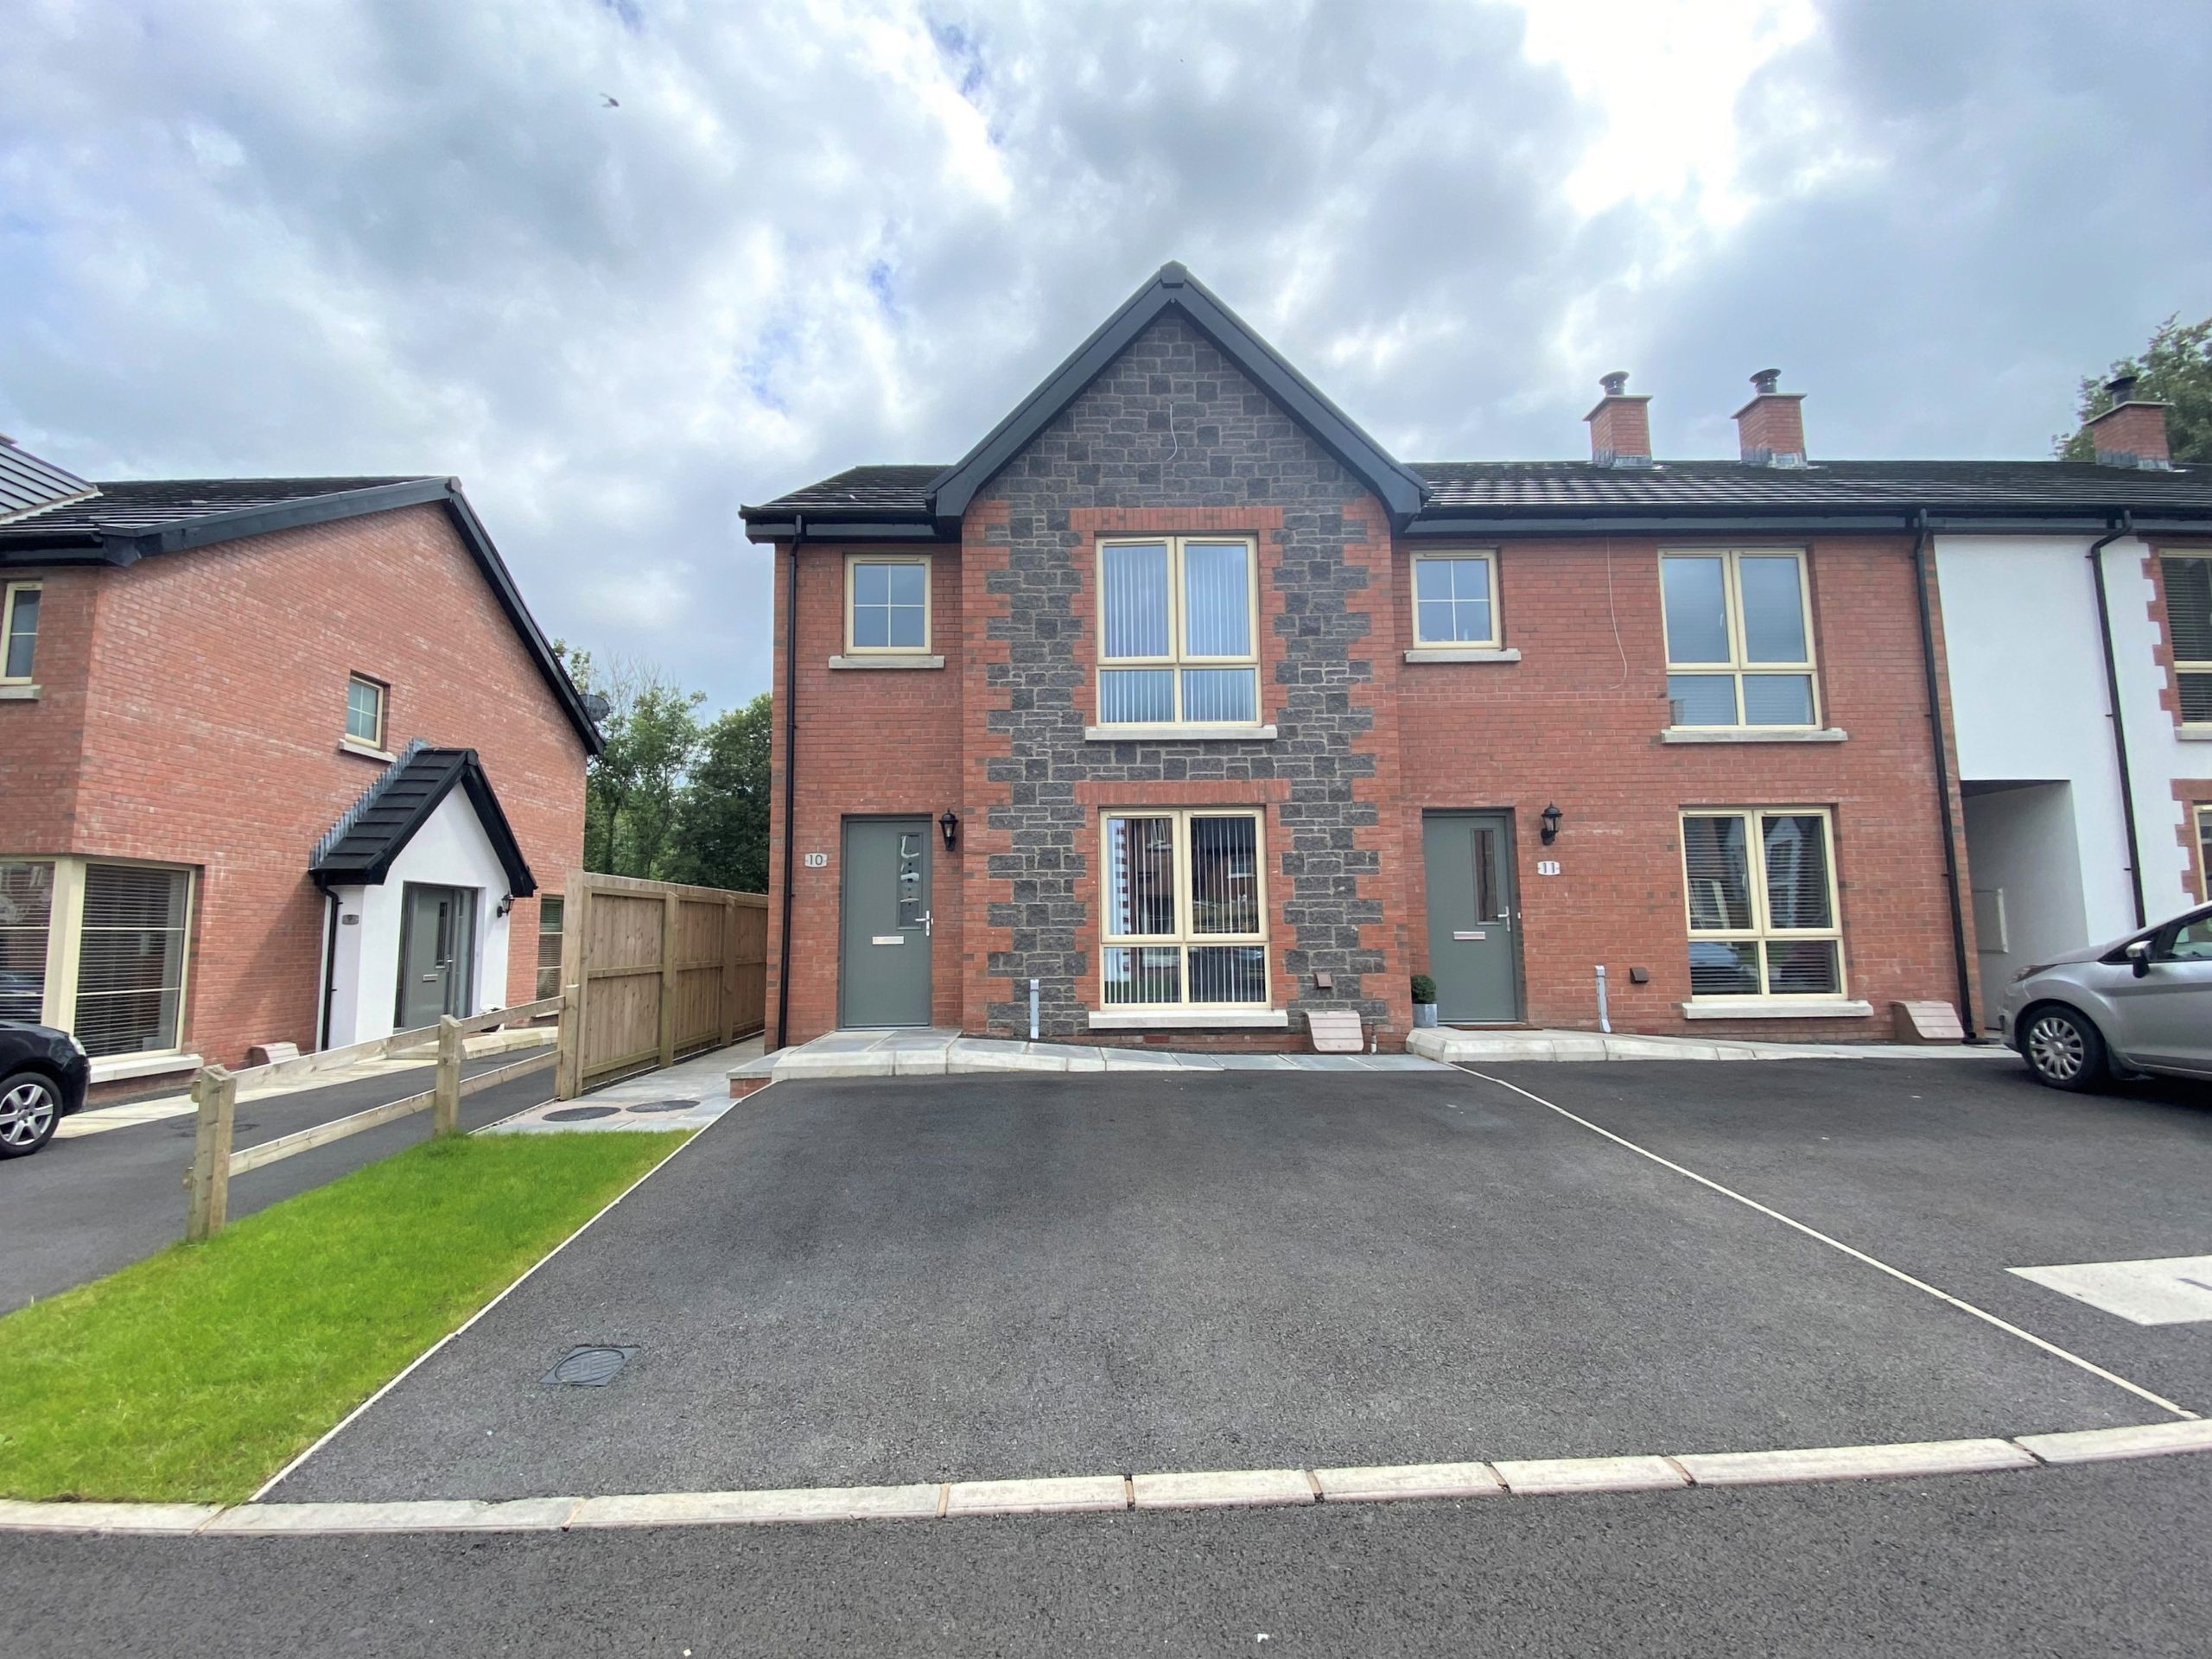 Image of 10 Haughtons Hall, Cullybackey, Ballymena, Co Antrim, BT42 1FT